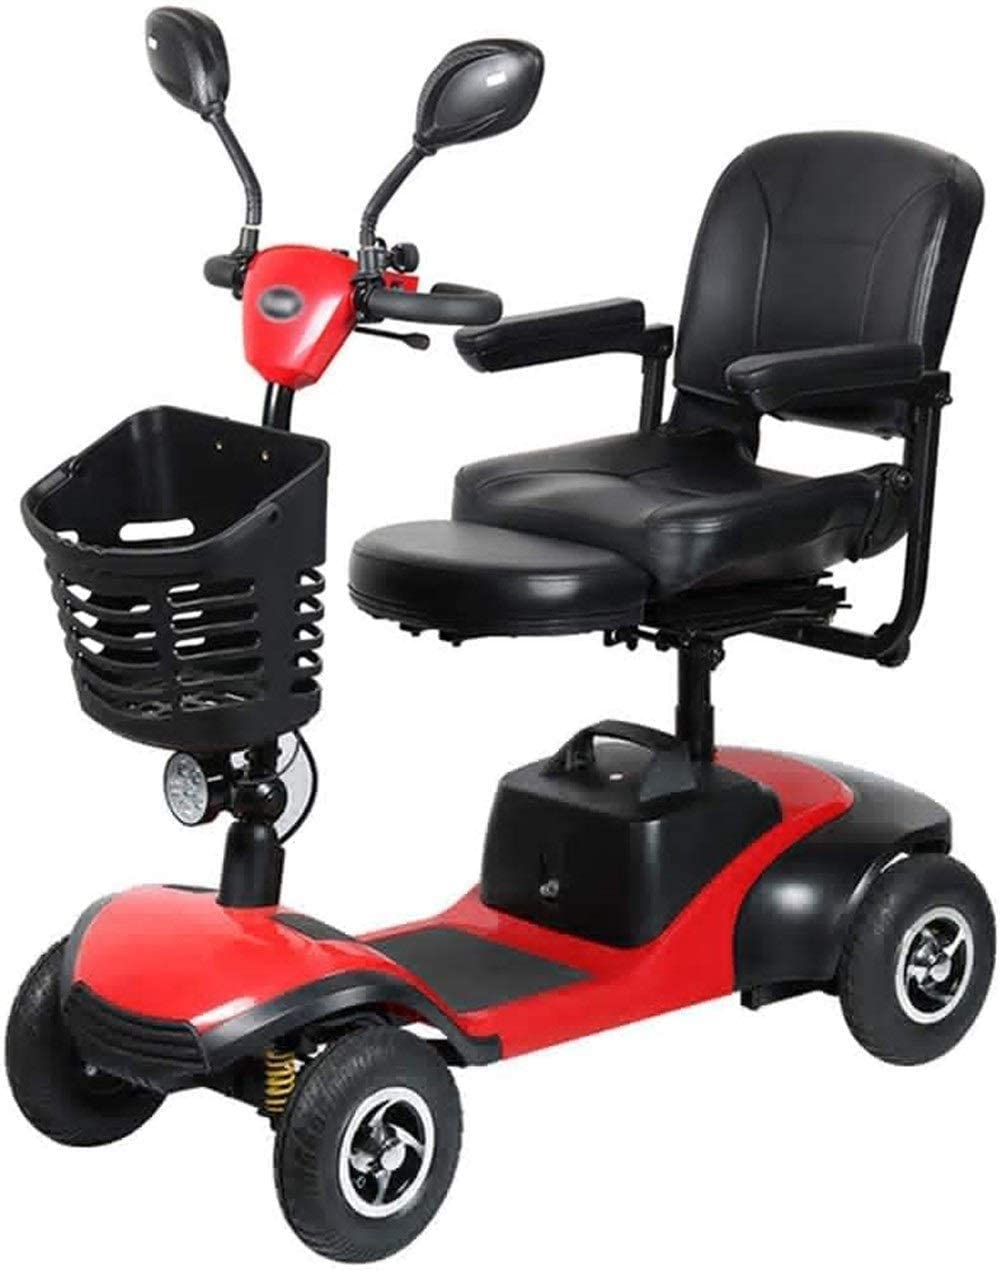 BXZ Wheelchair Light and Compact, Foldable,4 Wheel Power Electric Travel and Mobility Scooter,36Cm Wide Seat,Openable Handrail,Electromagnetic Brake,Rotatable Seat for Disabled Elderly,-,-